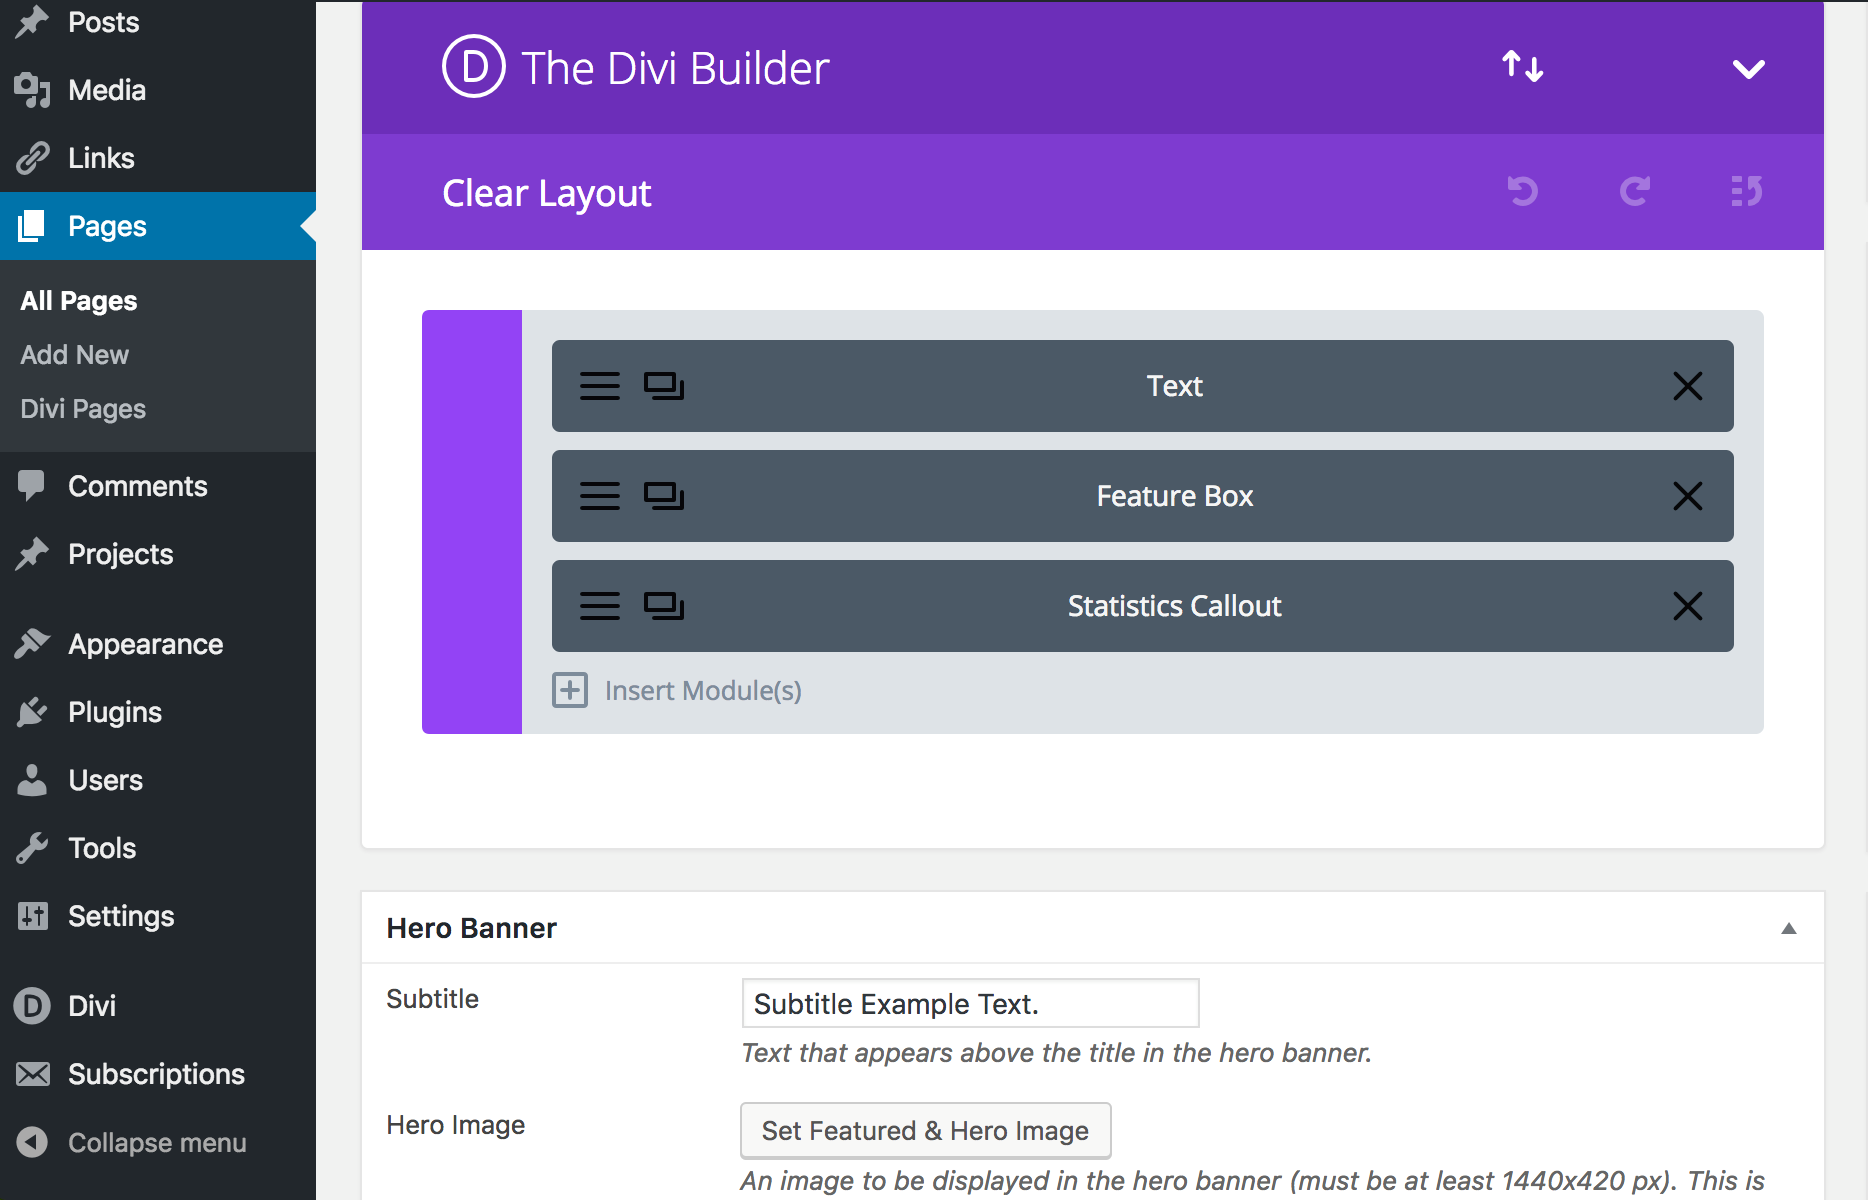 This image has a screenshot of the Divi Builder, with the Hero Banner section highlighted